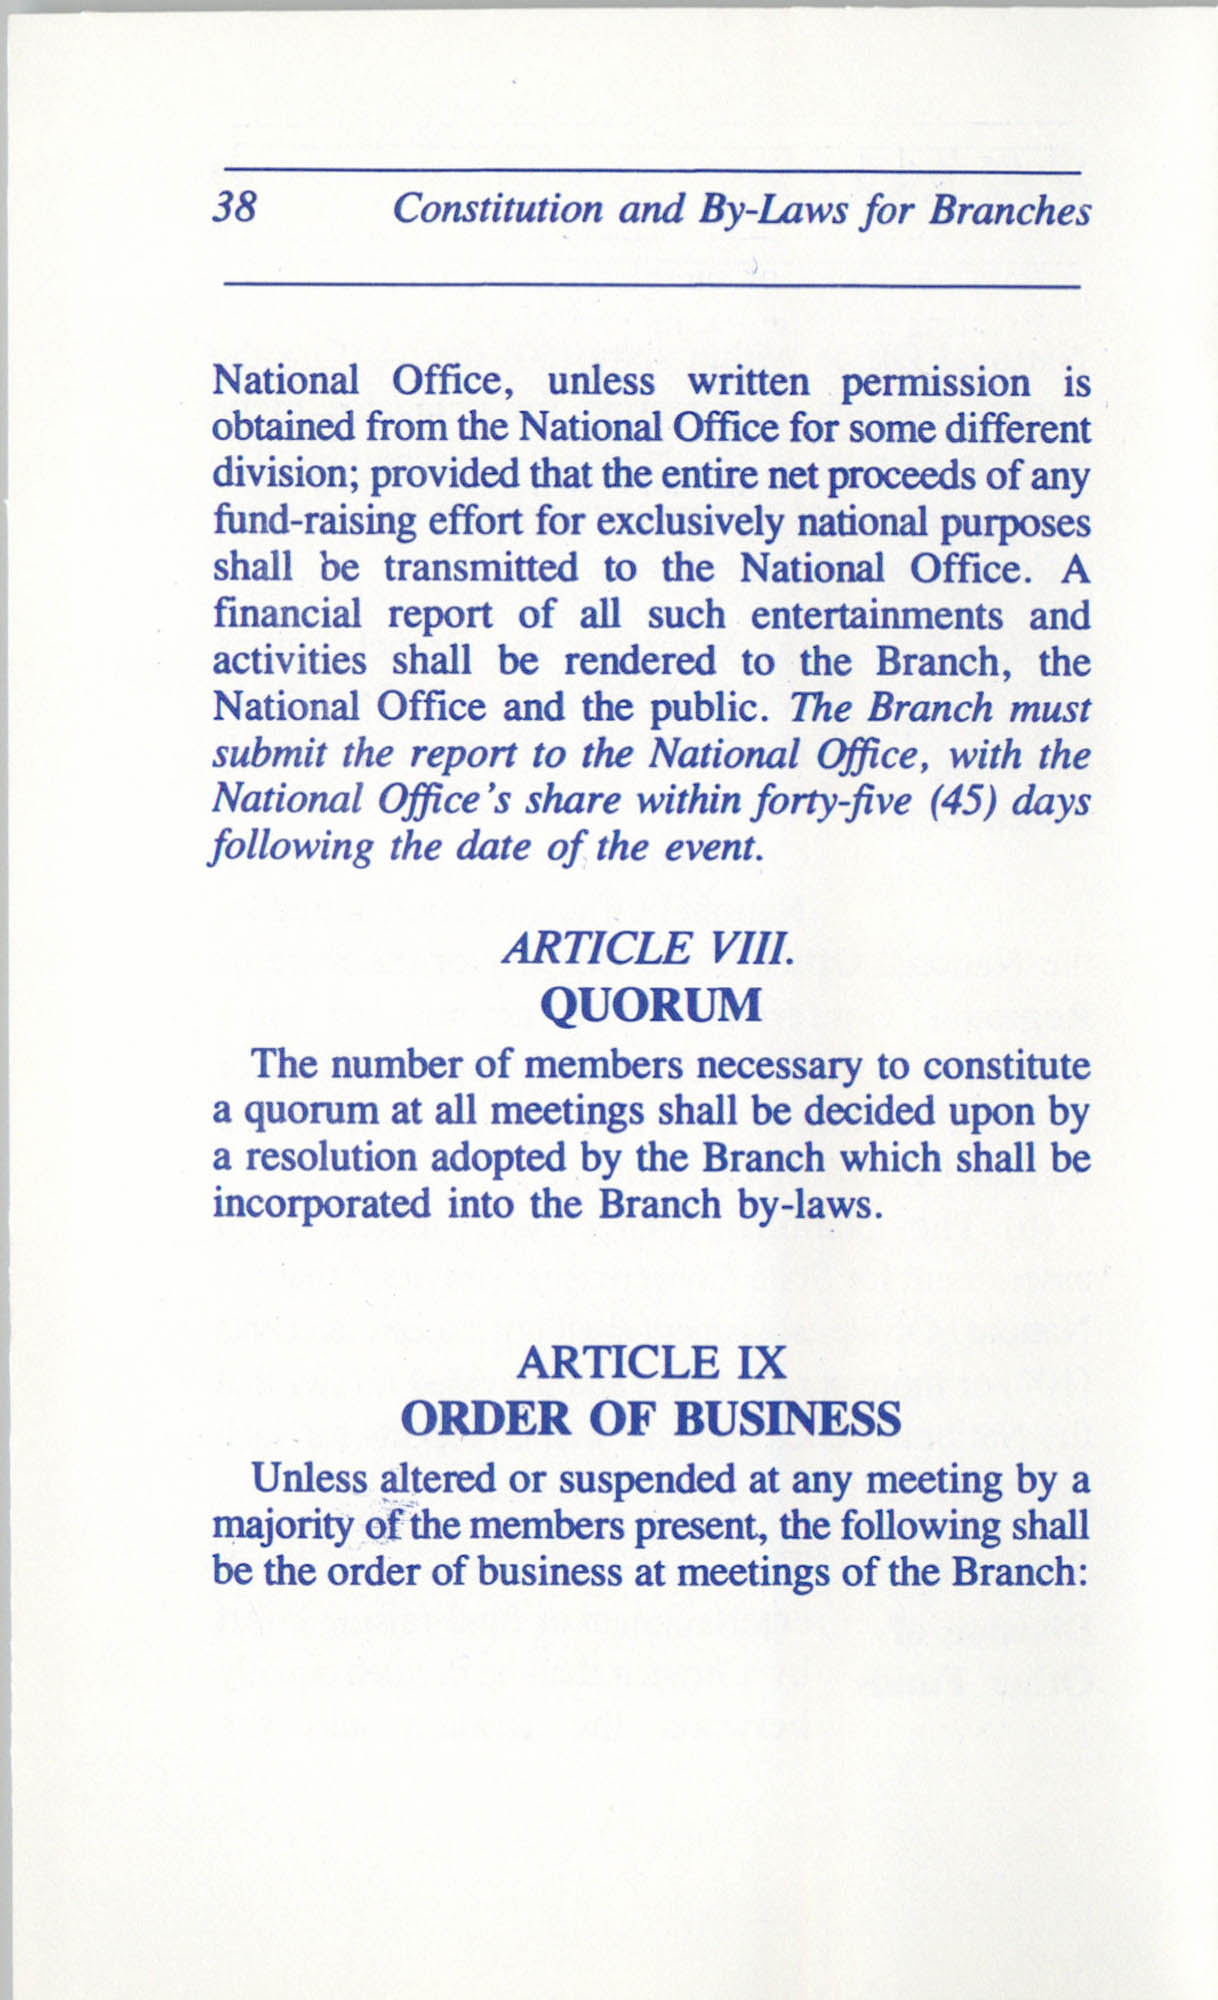 Constitution and By-Laws for Branches of the NAACP, June 1993, Page 38